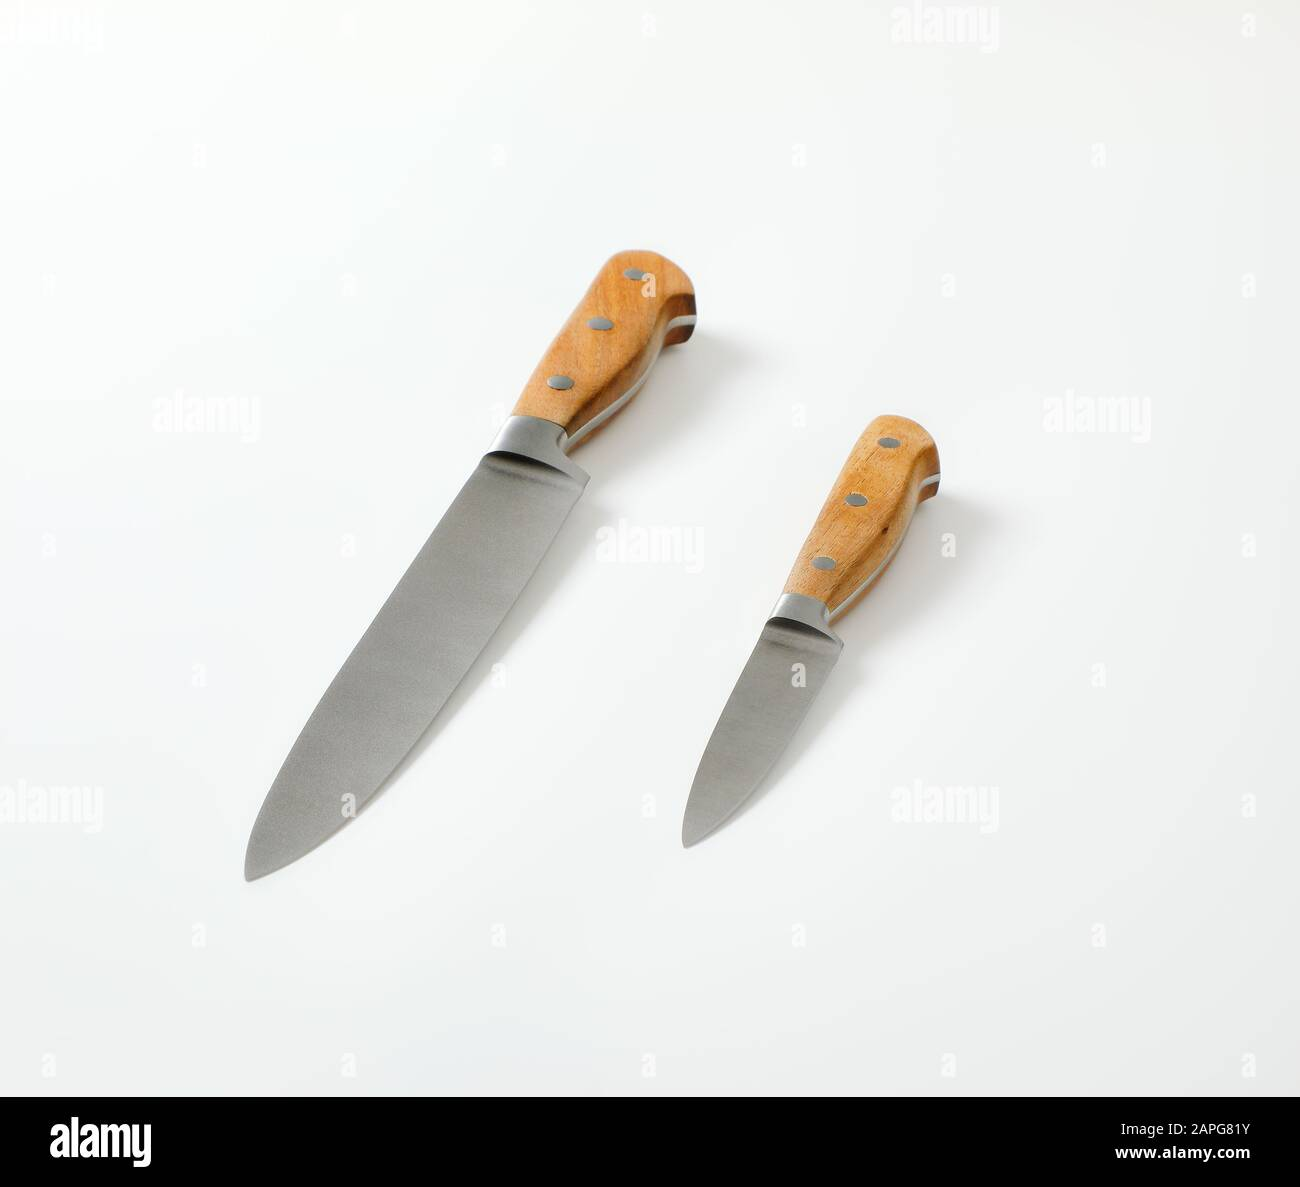 Set Of Two Sharp Pointed Tip Kitchen Knives Utility Knife And Paring Knife Stock Photo Alamy